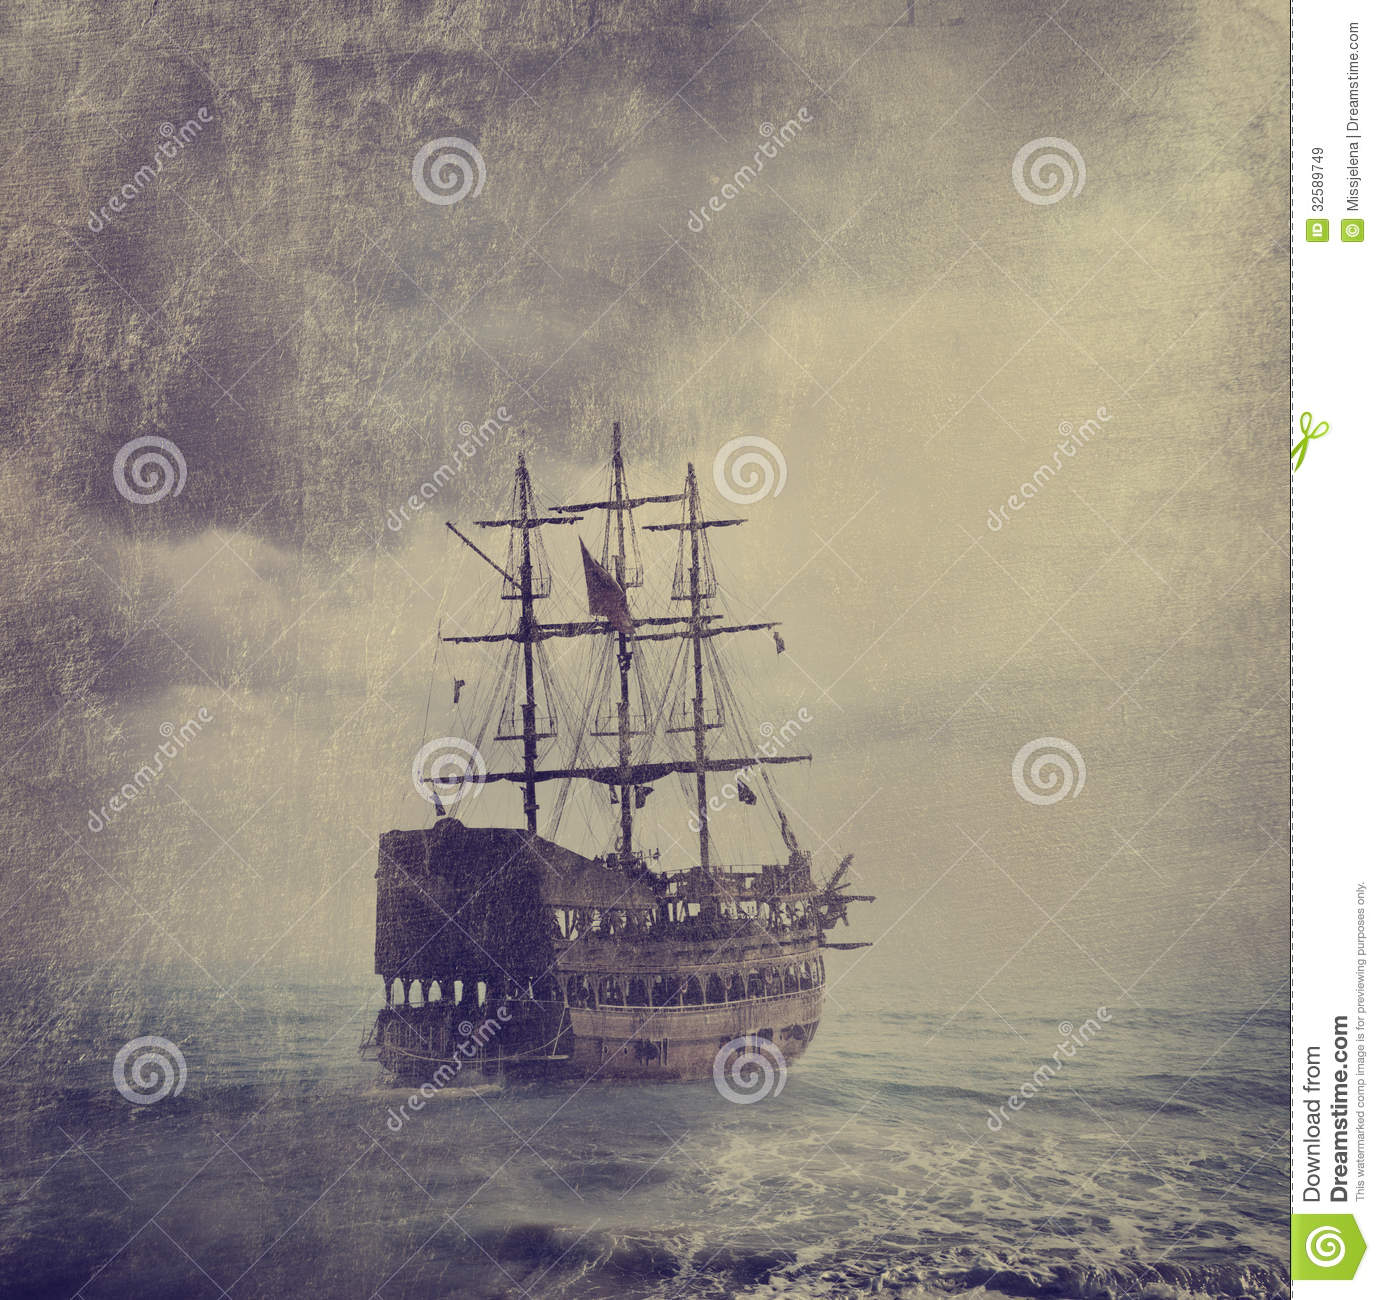 Old Pirate Ship Royalty Free Stock Images - Image: 32589749